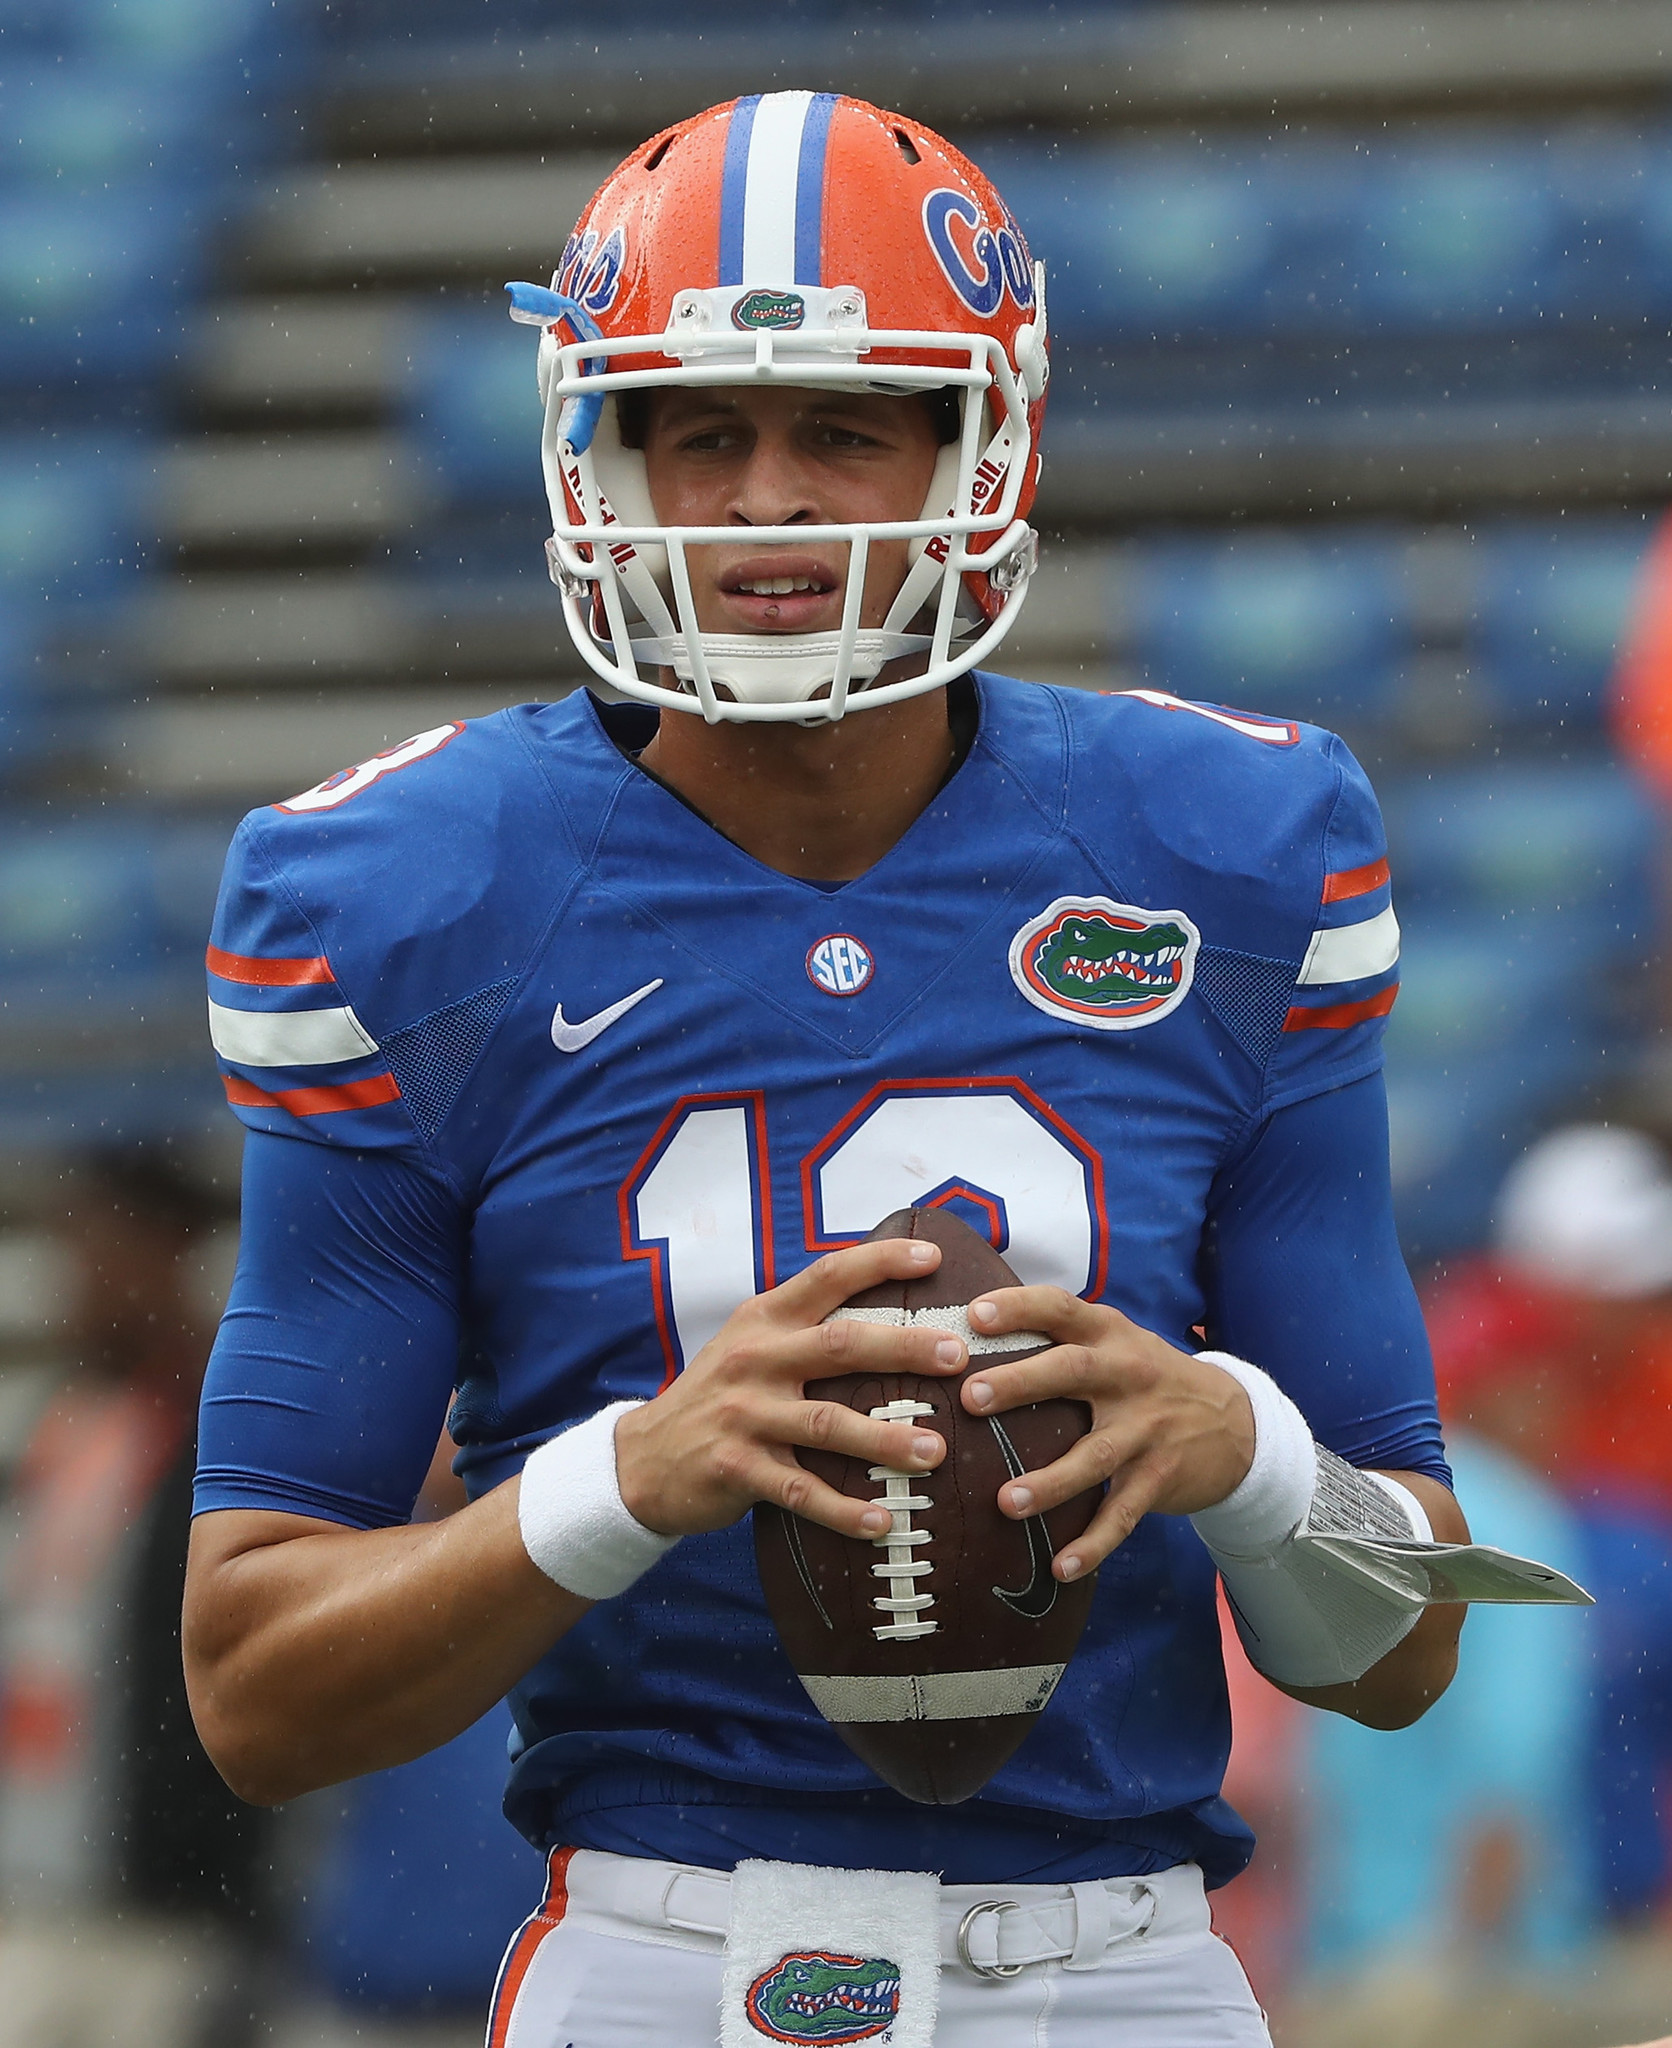 Os-freshman-qb-might-be-the-answer-for-jim-mcelwain-s-gators-20161205